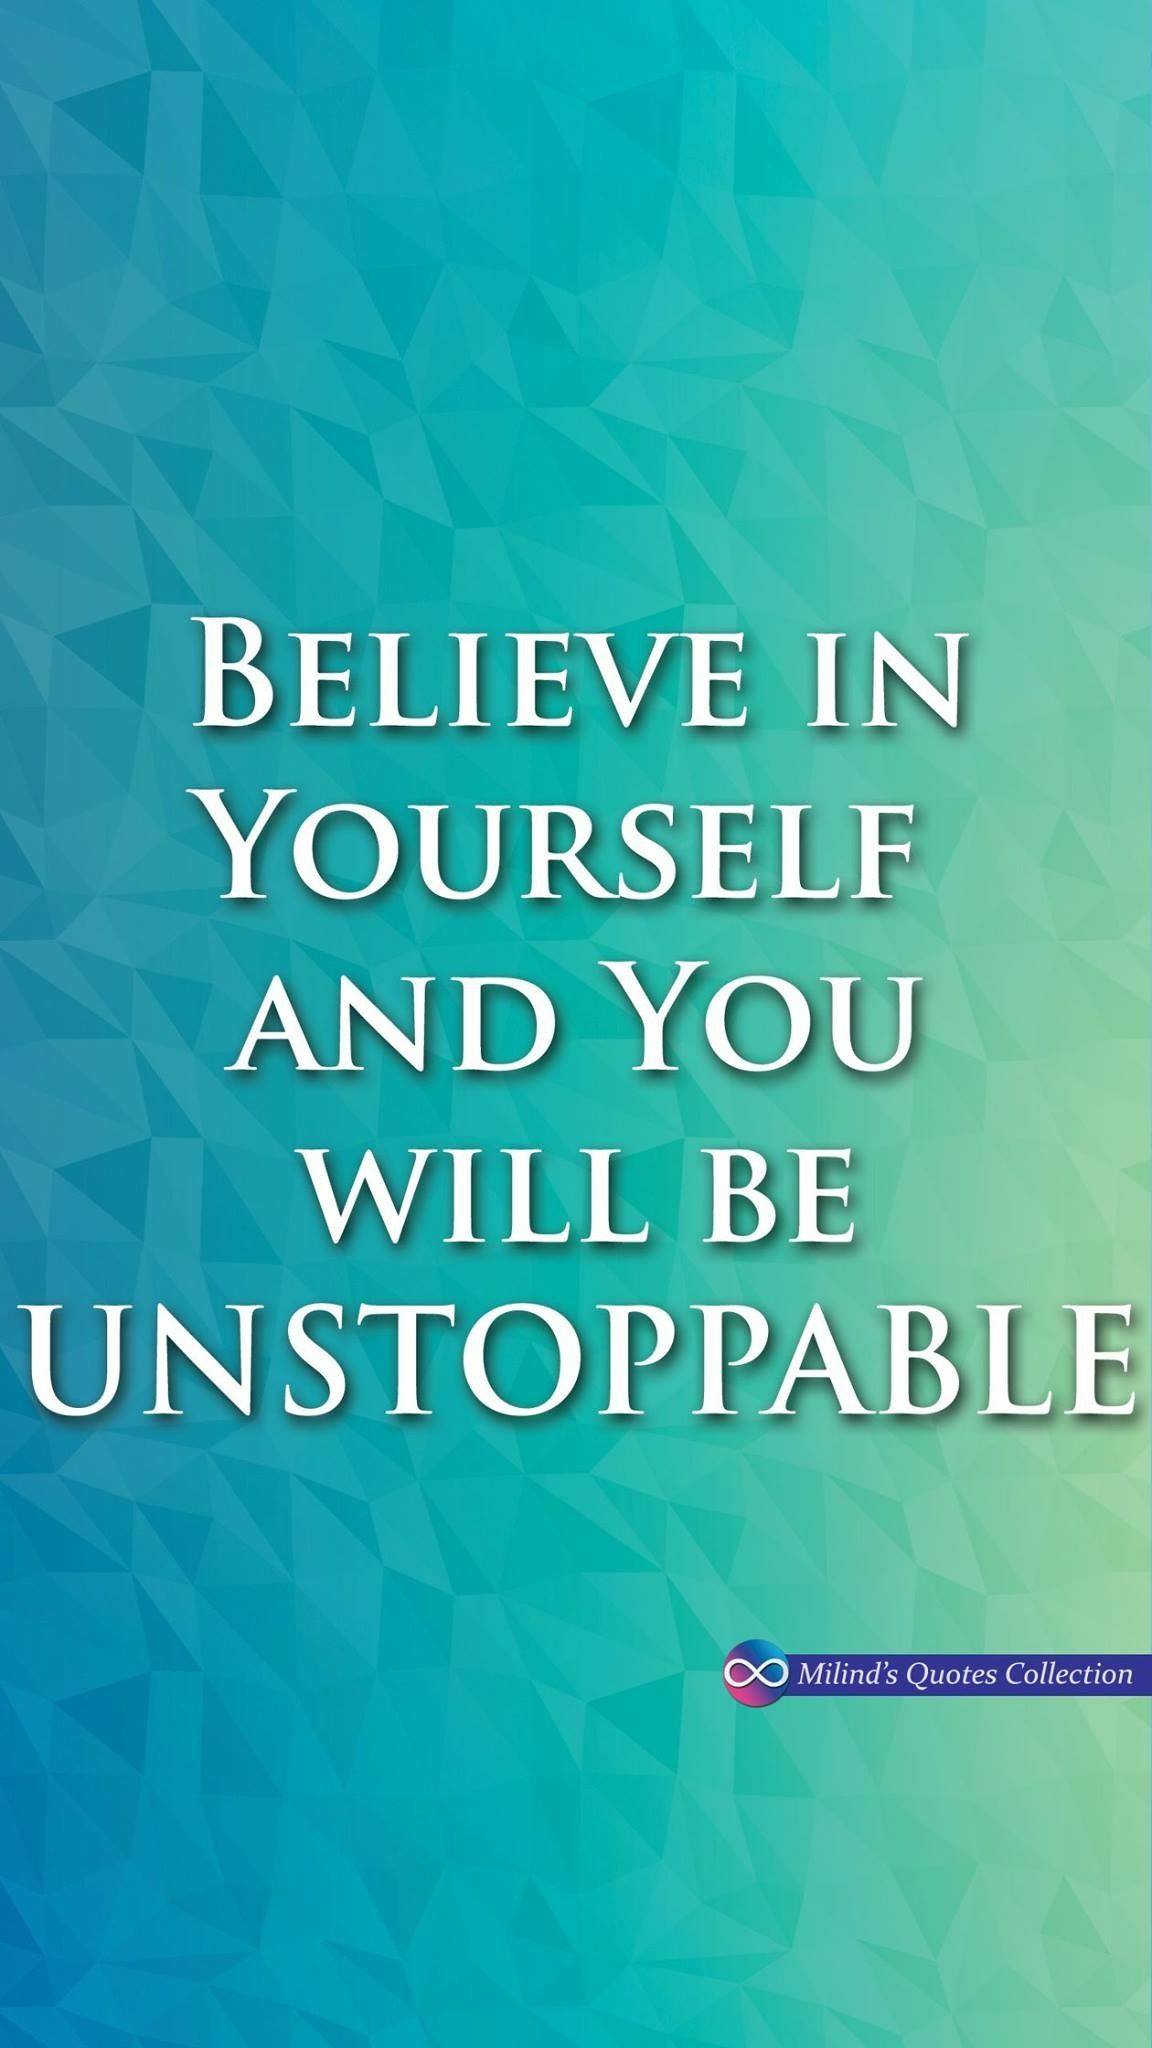 Believe in Yourself and You will be UNSTOPPABLE 1152x2048